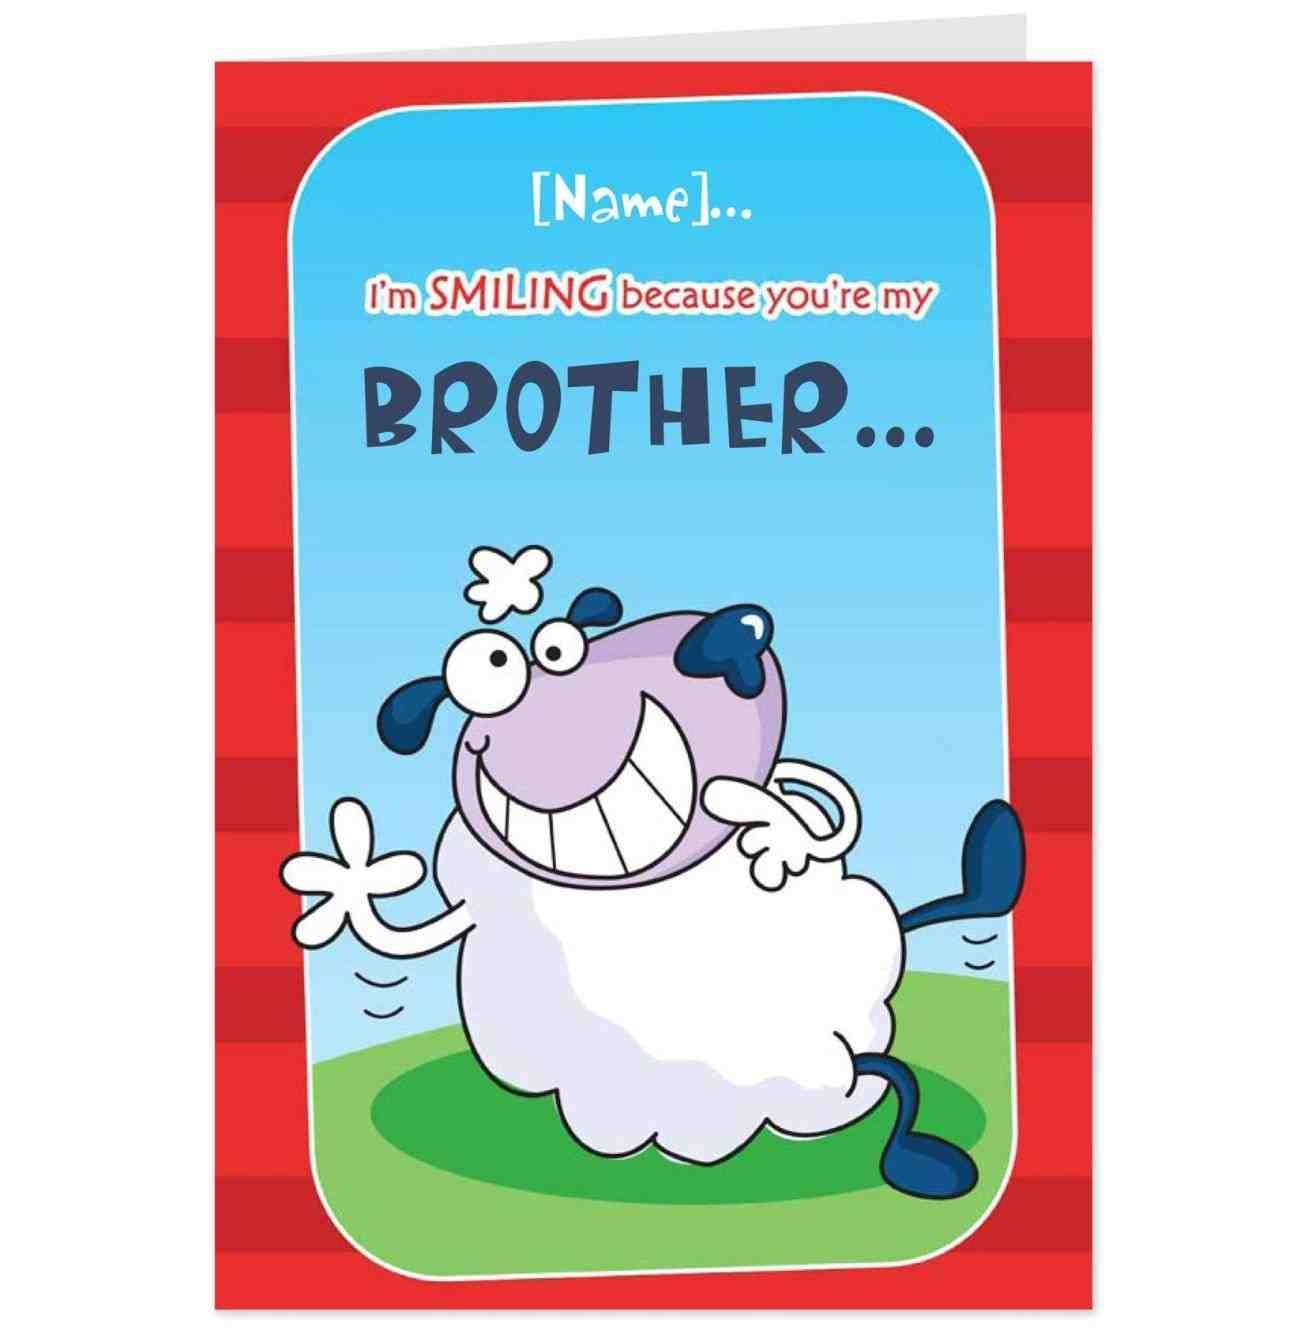 funny birthday card sayings for brother ; e75cd09b4b51cb04a8ccf9f08a20ae69